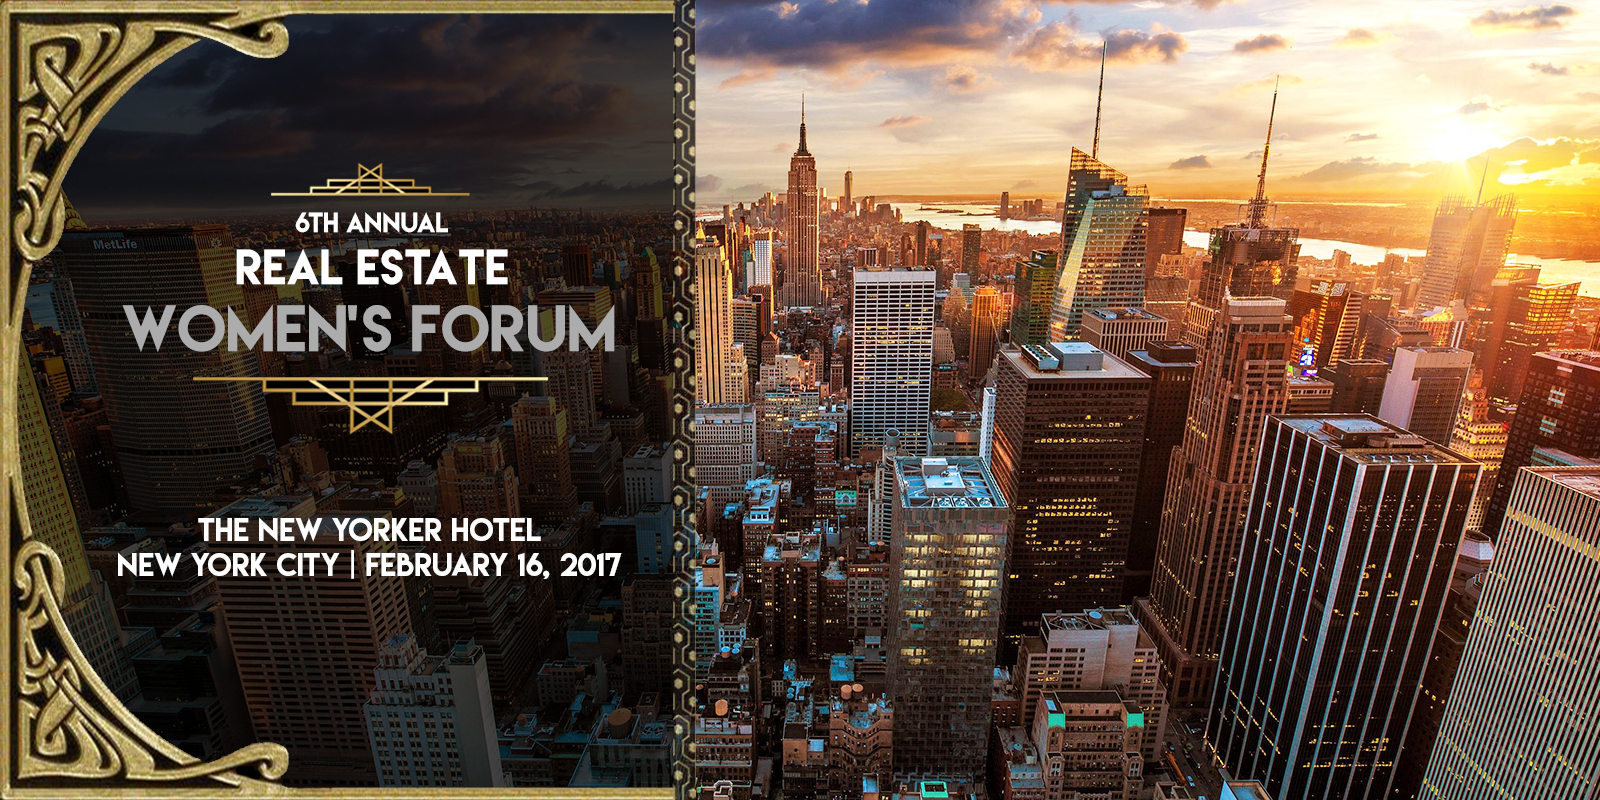 6th annual Real Estate Women's Forum